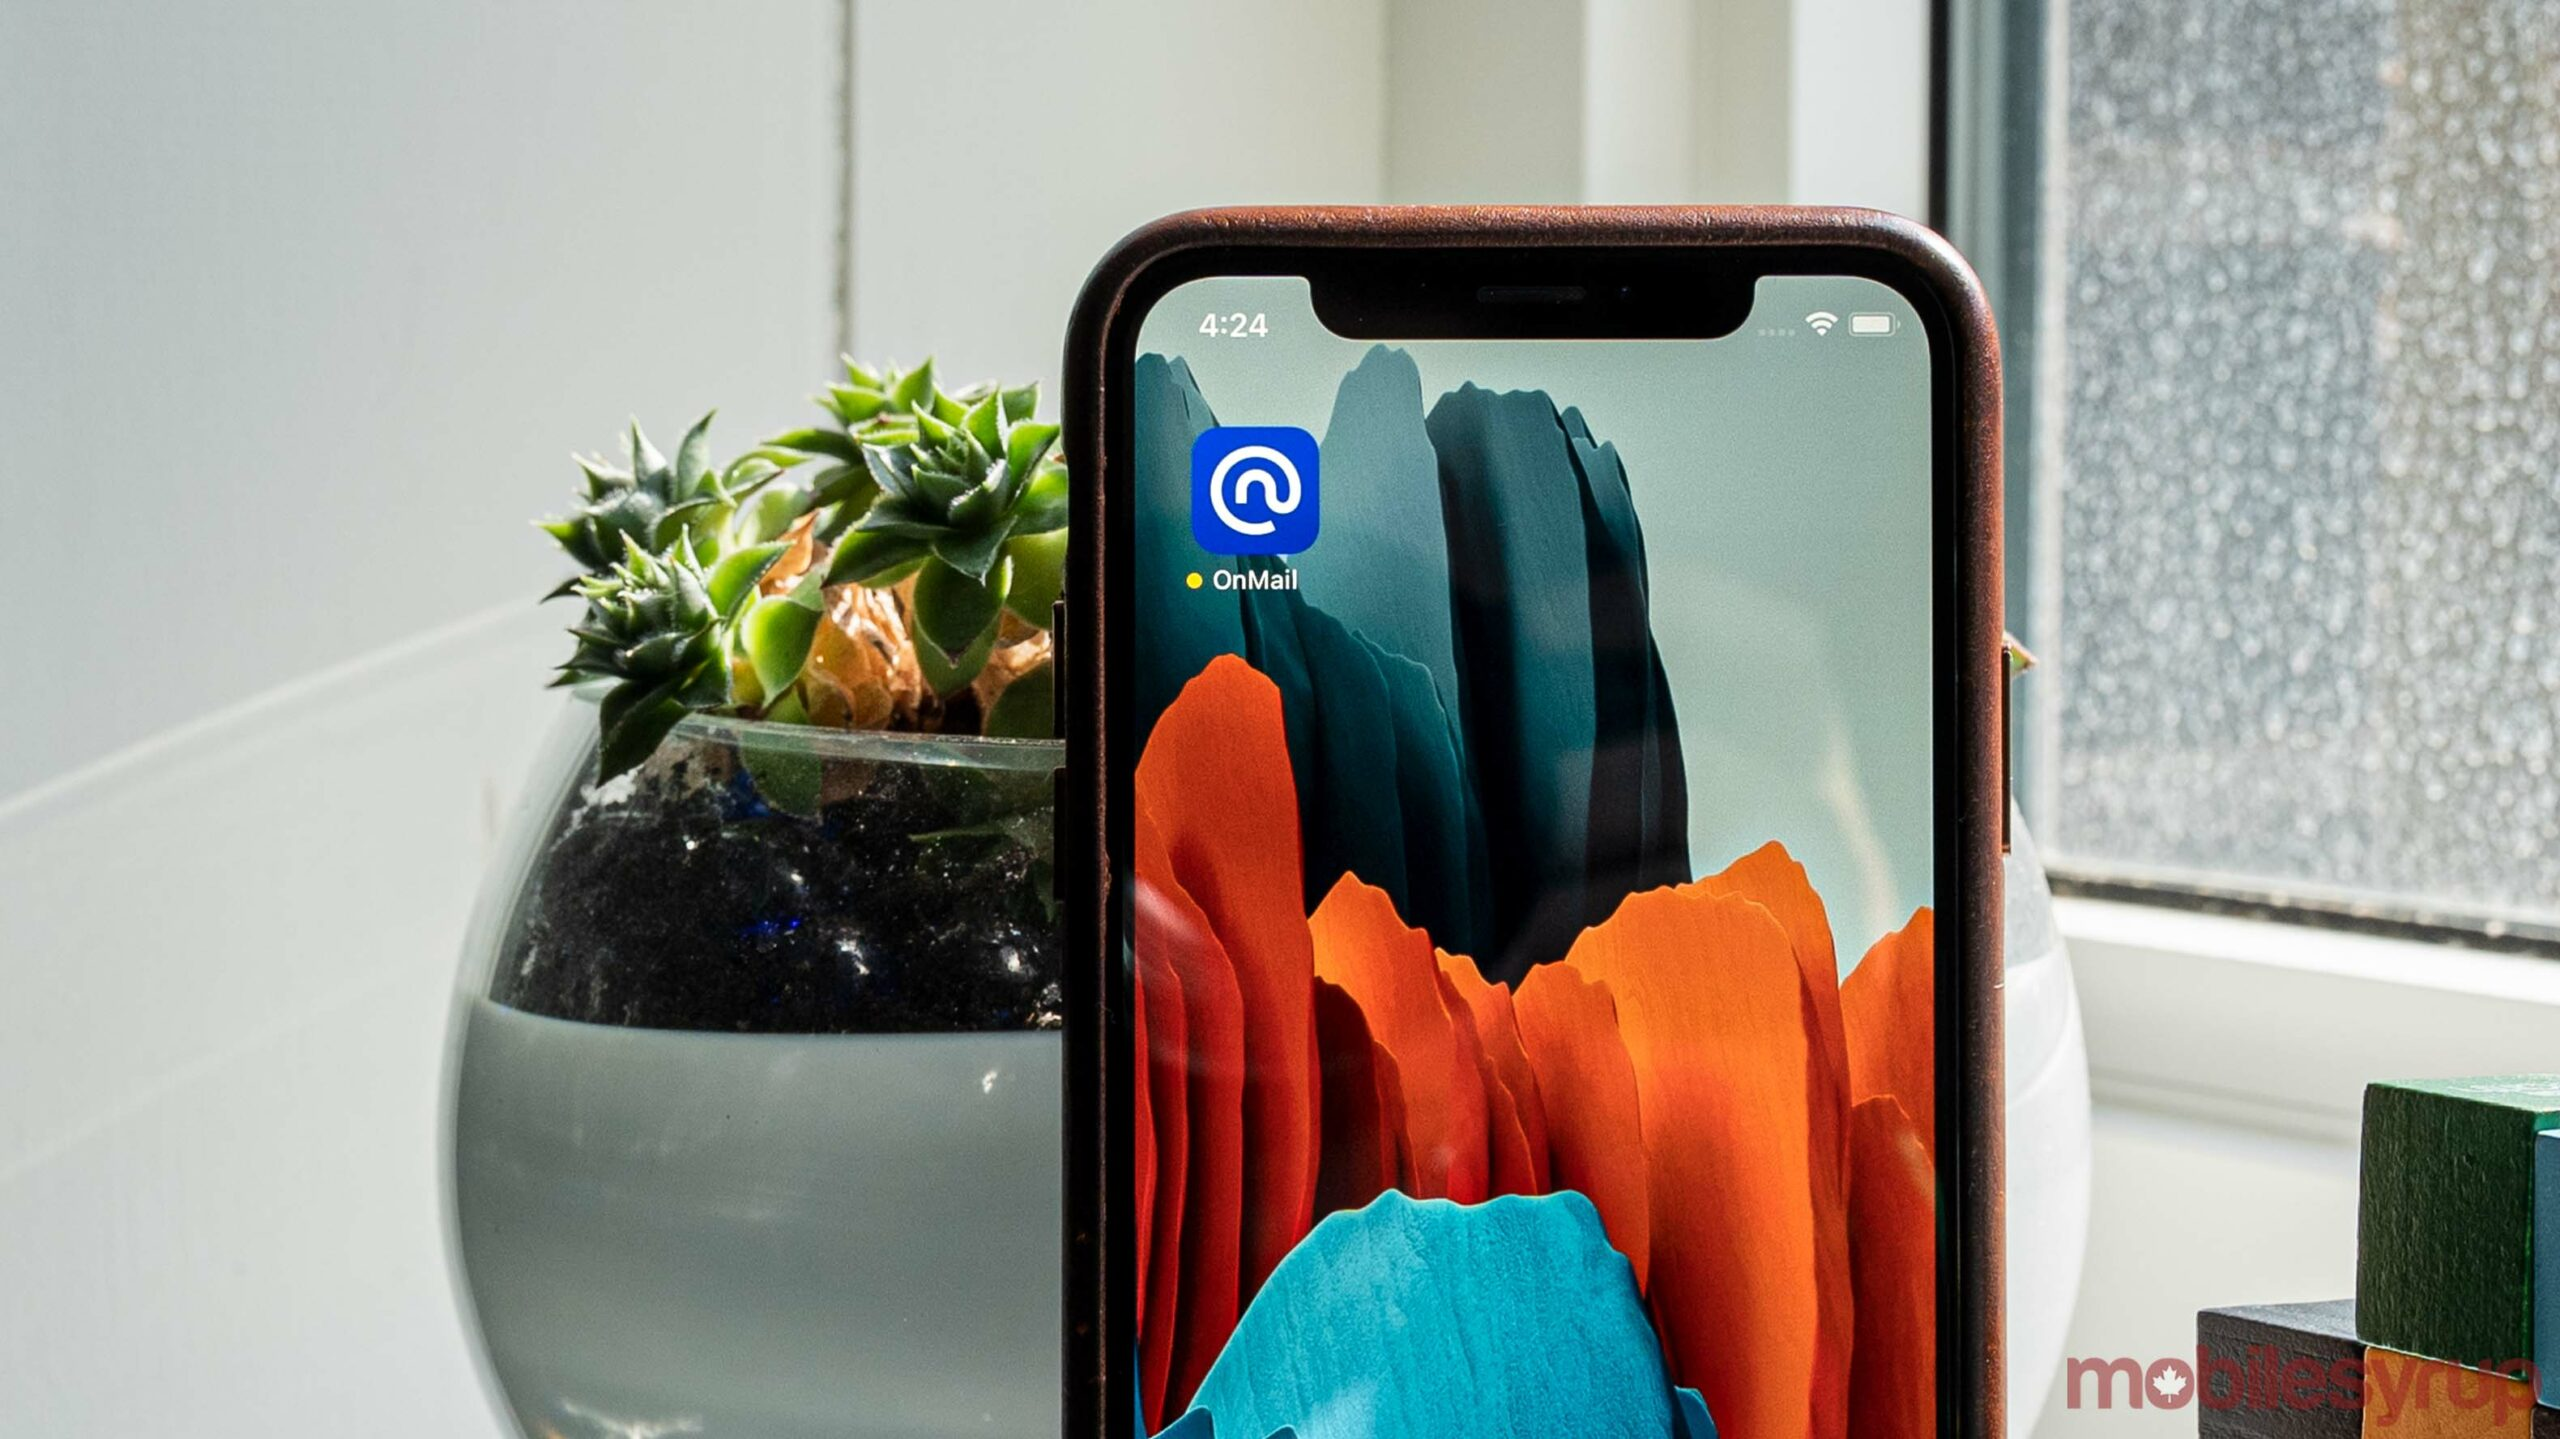 OnMail app on iOS